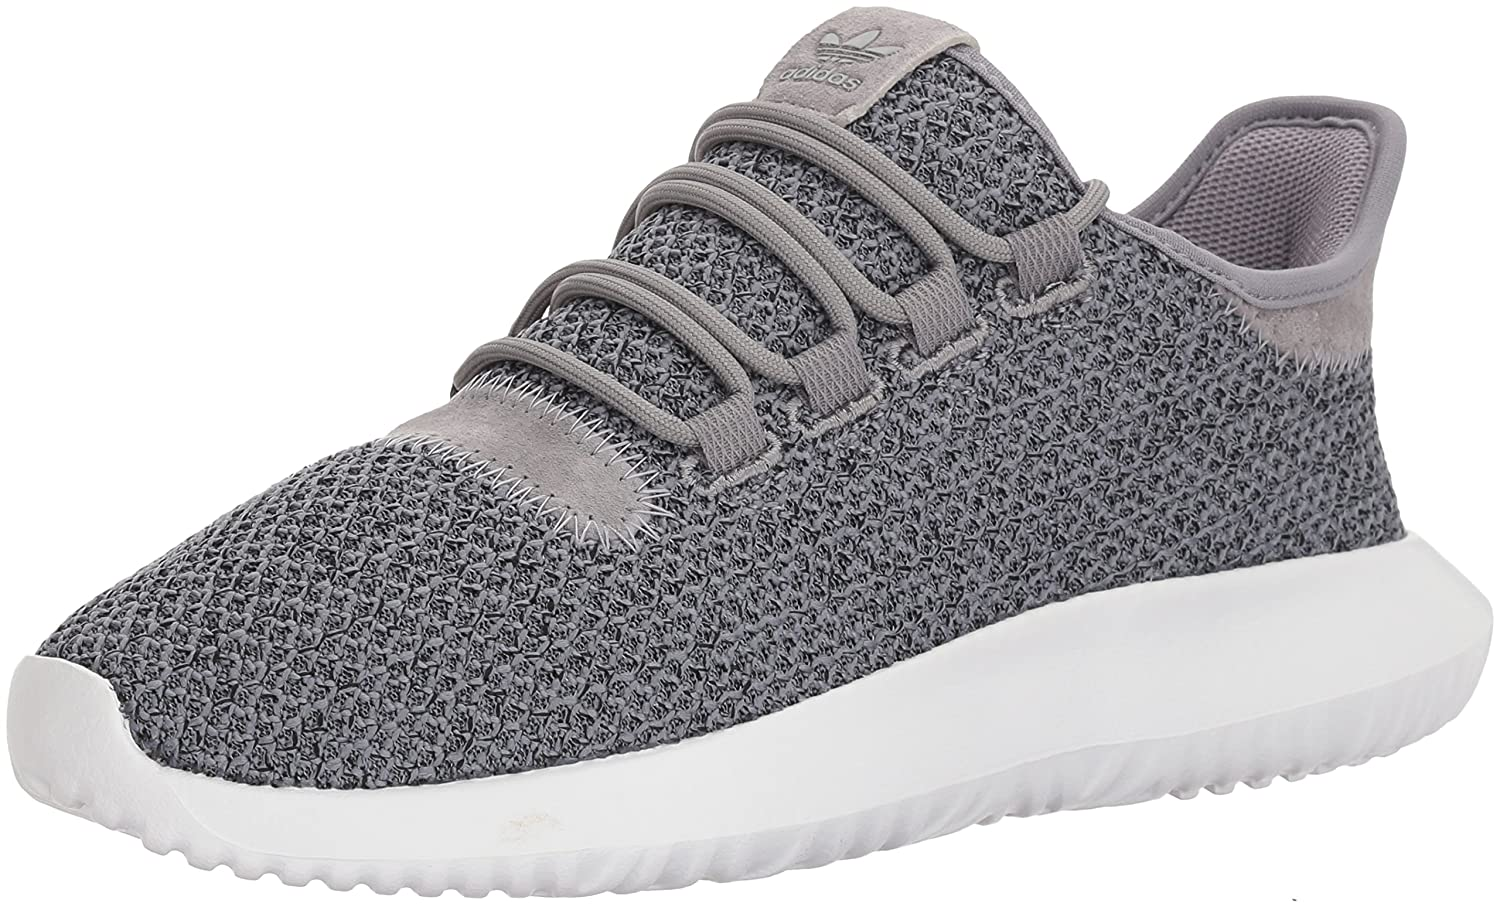 adidas 5 Originals Women's Tubular Shadow W Fashion Sneaker B0711R9YV6 5 adidas B(M) US|Grey Three/Grey Three/White 7b5b22